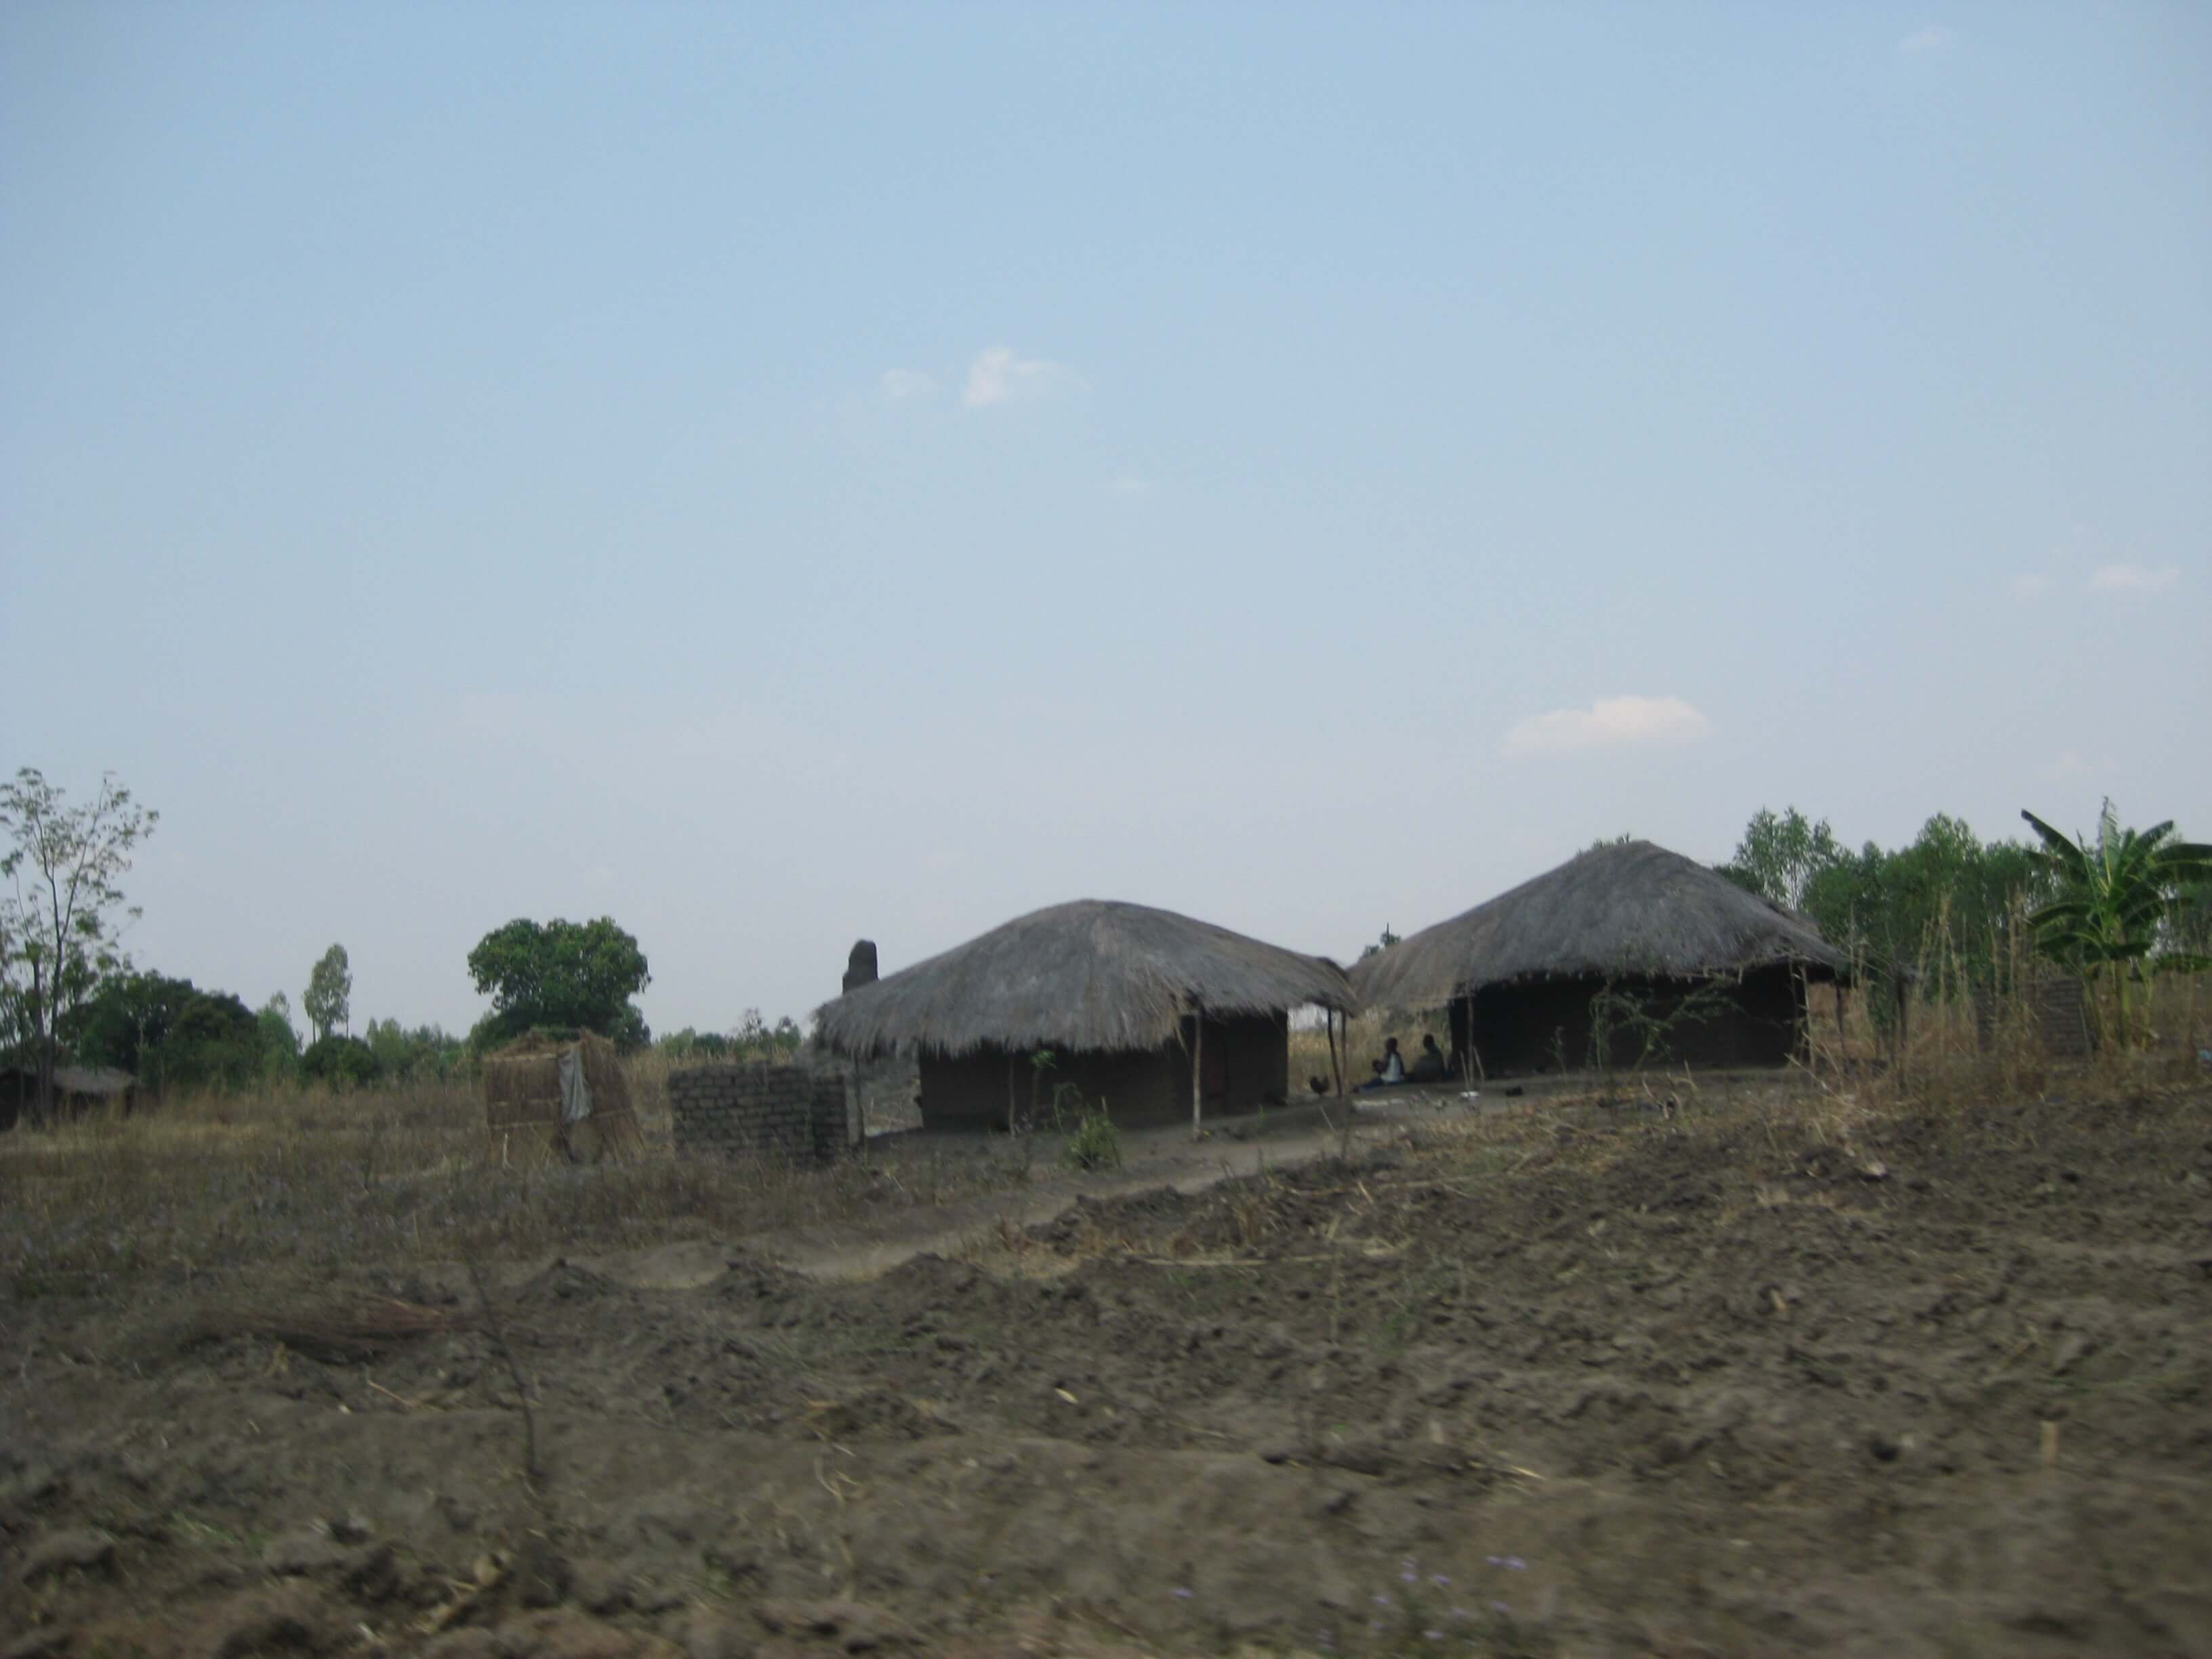 Malawi poverty